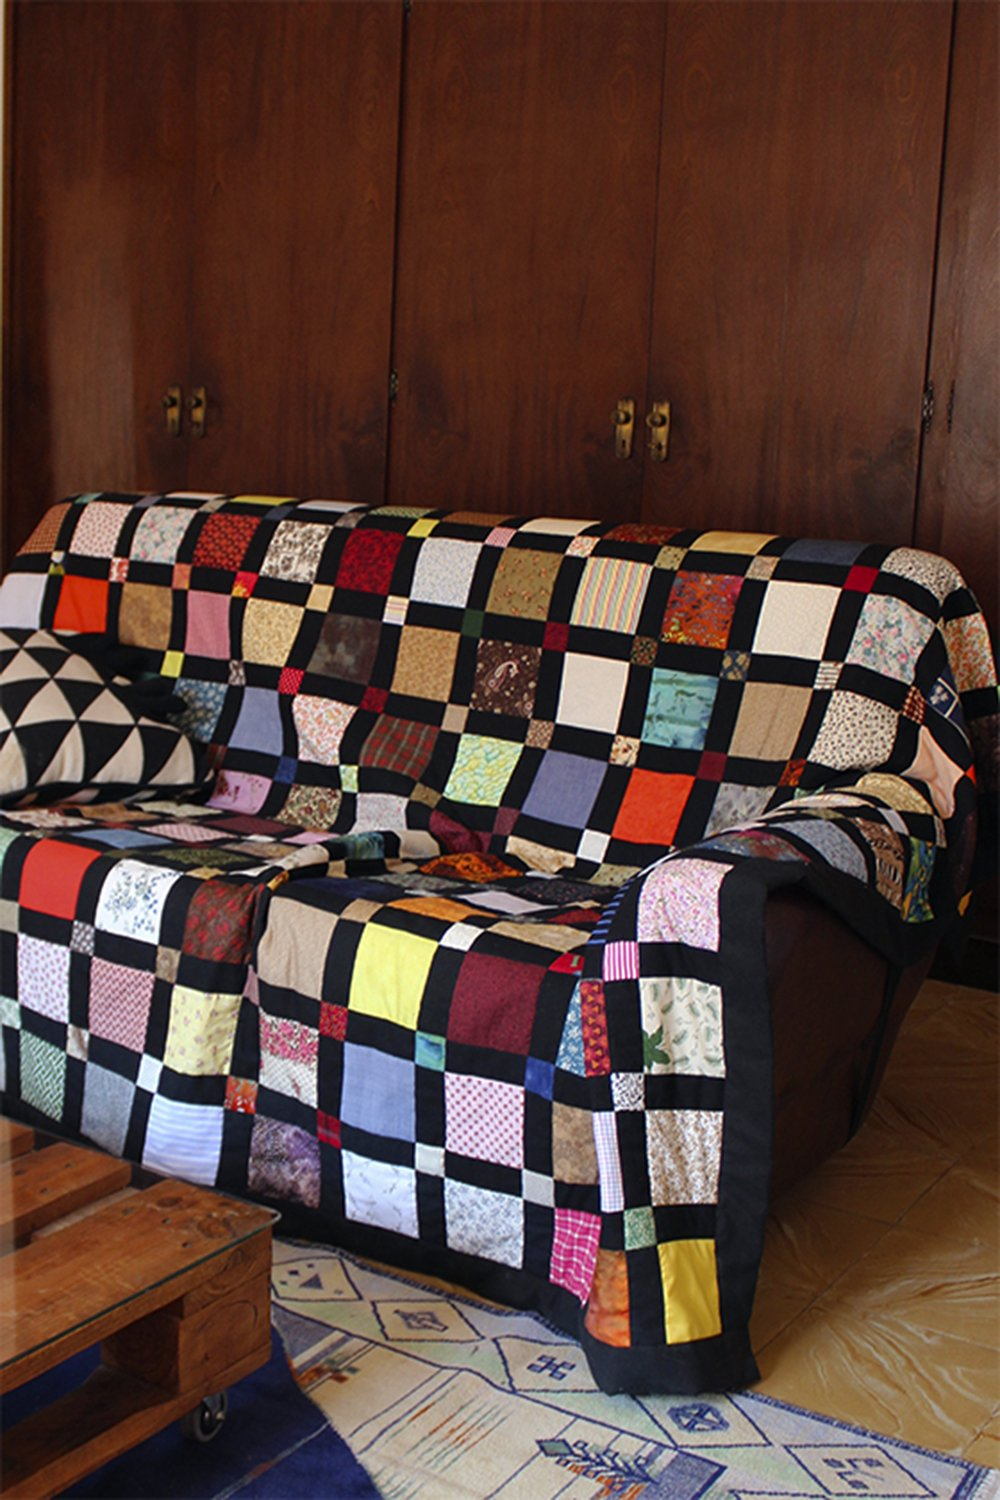 Patch quilt on sofa at Bussoga